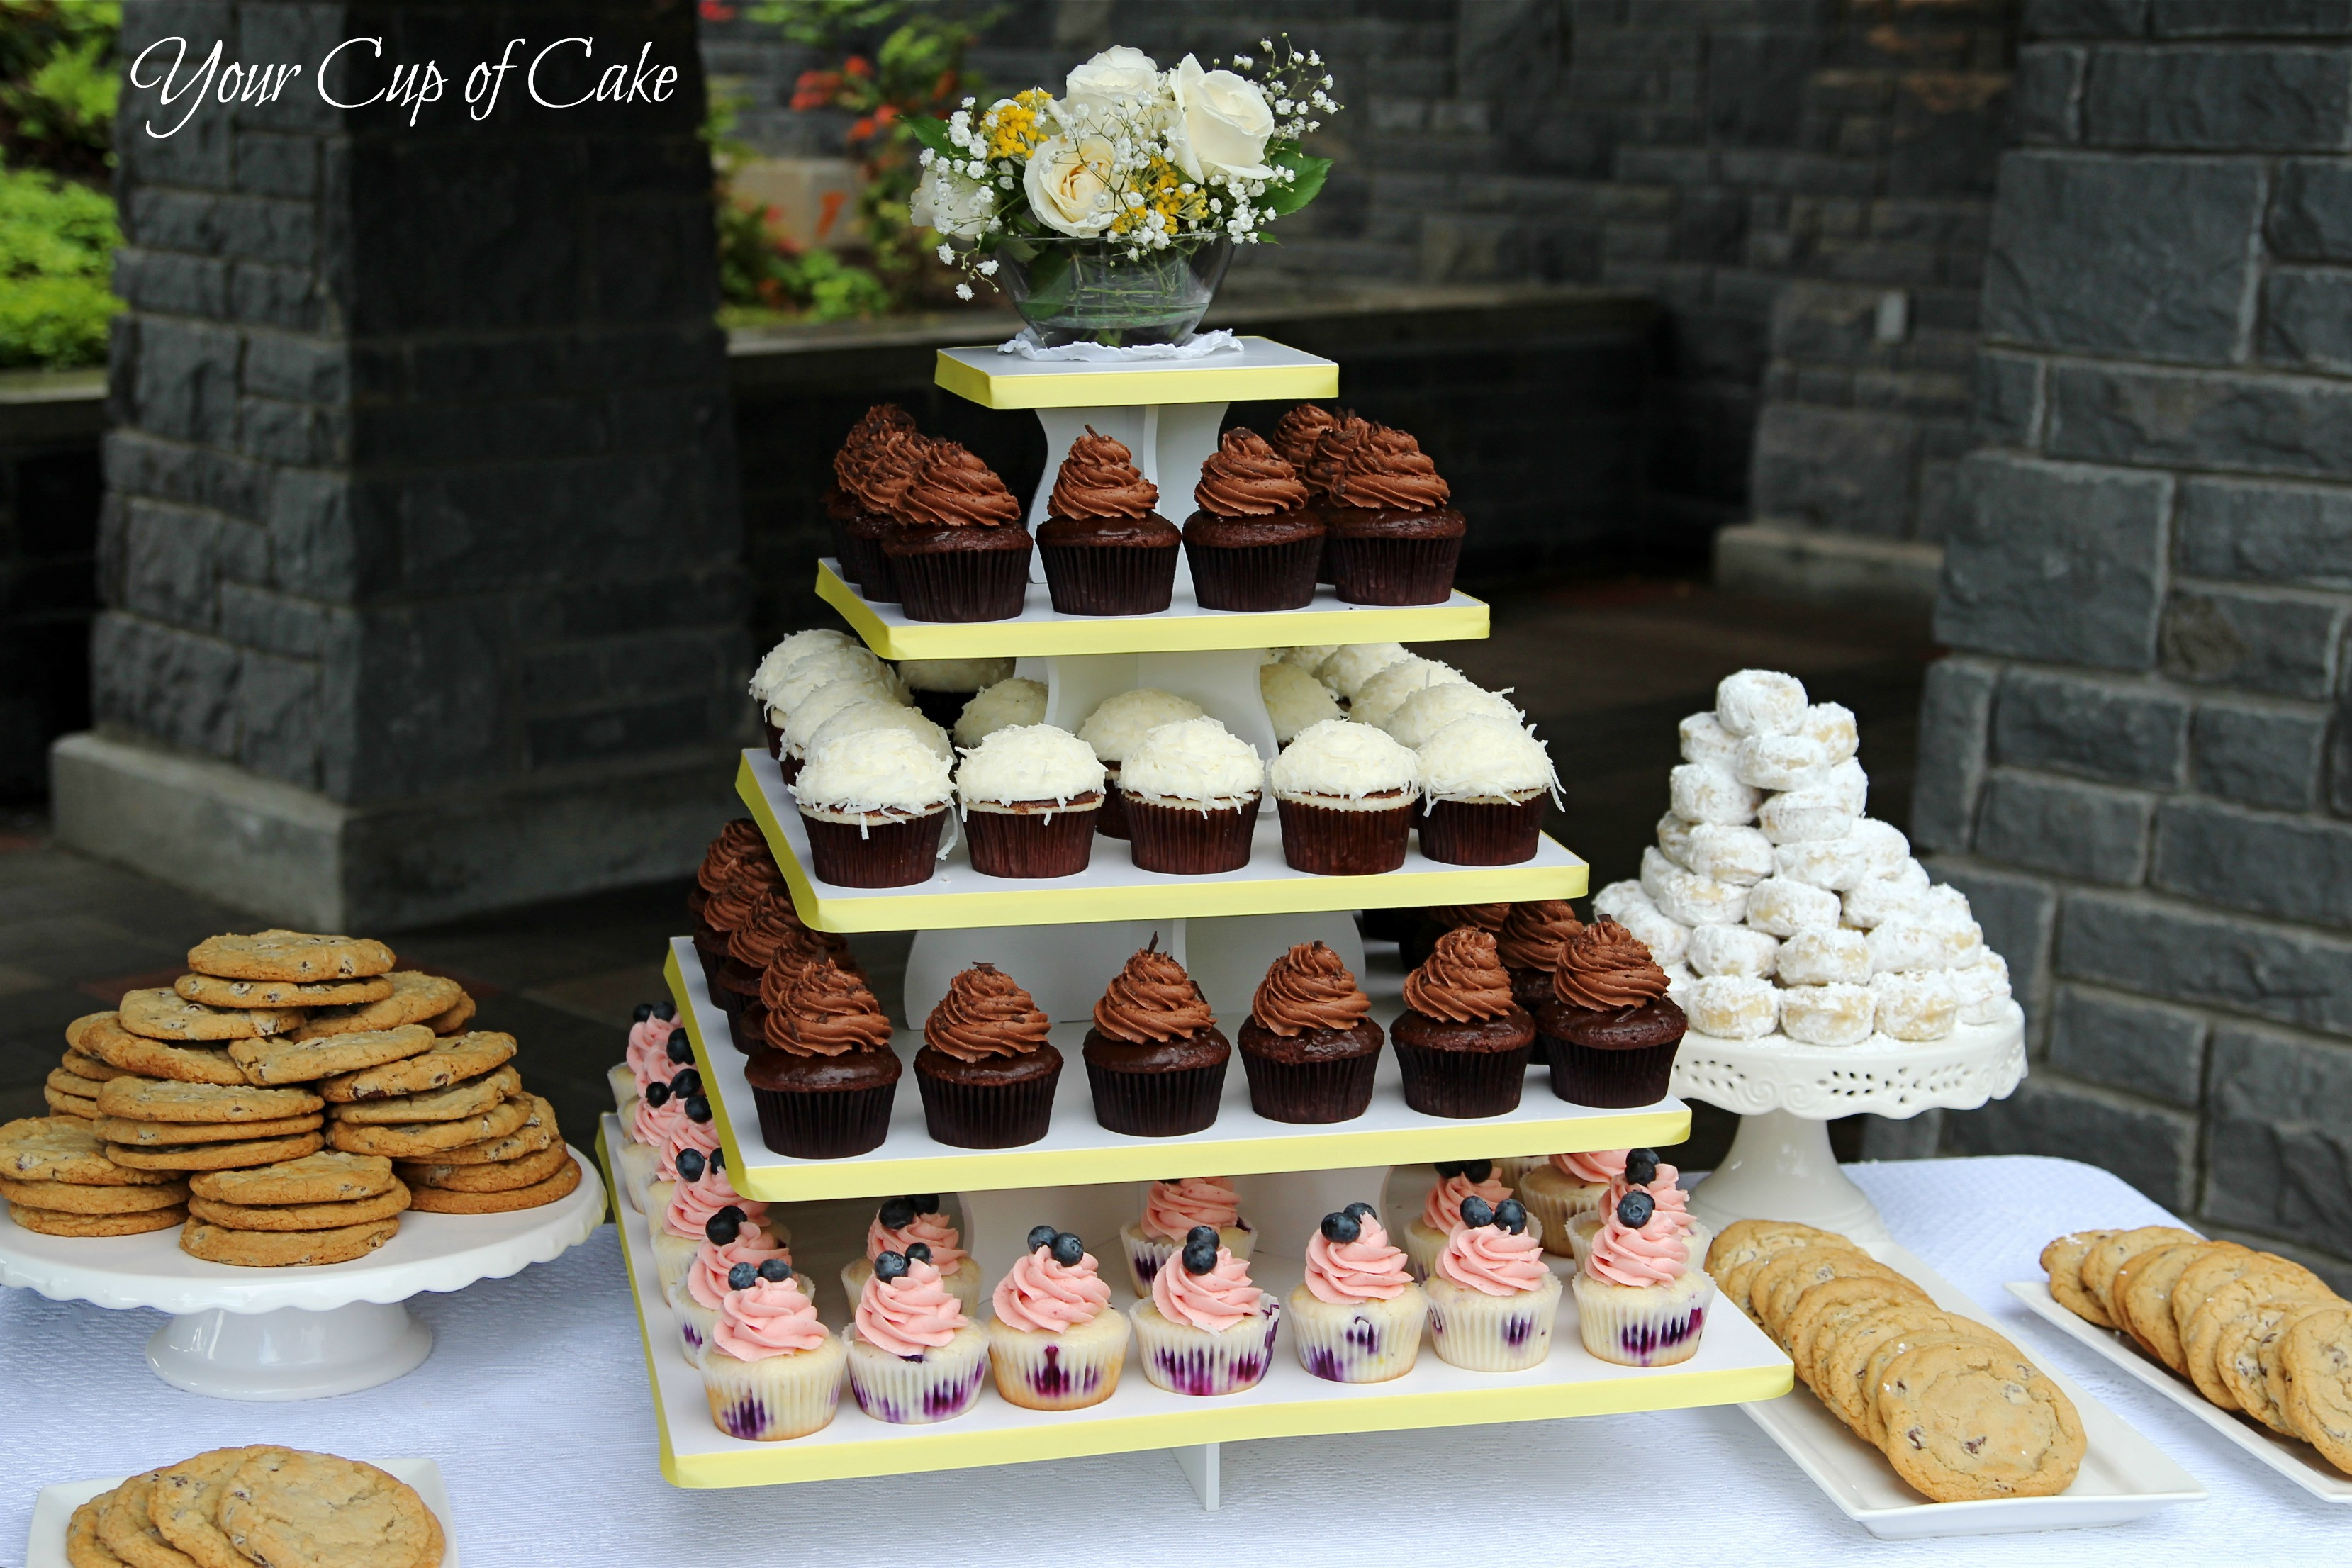 Wedding Cakes With Cupcakes On Tiers  Wedding Reception Your Cup of Cake